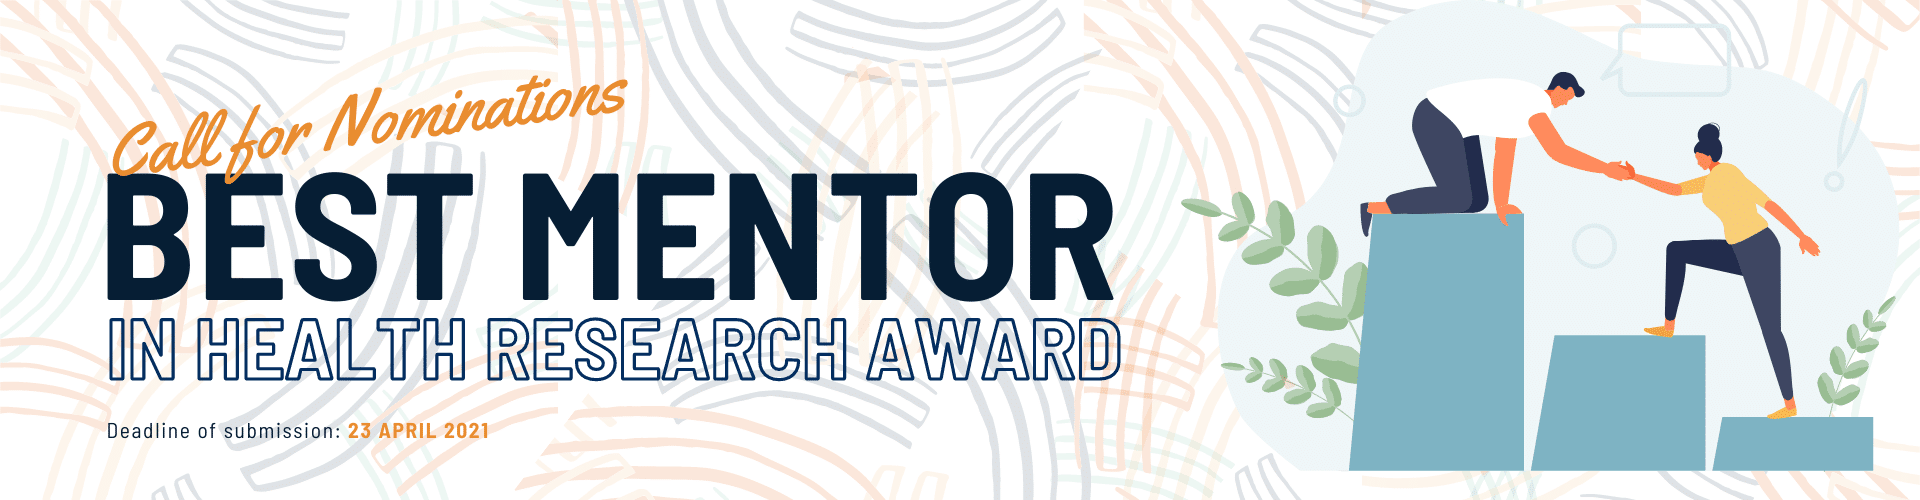 best mentor in health research award